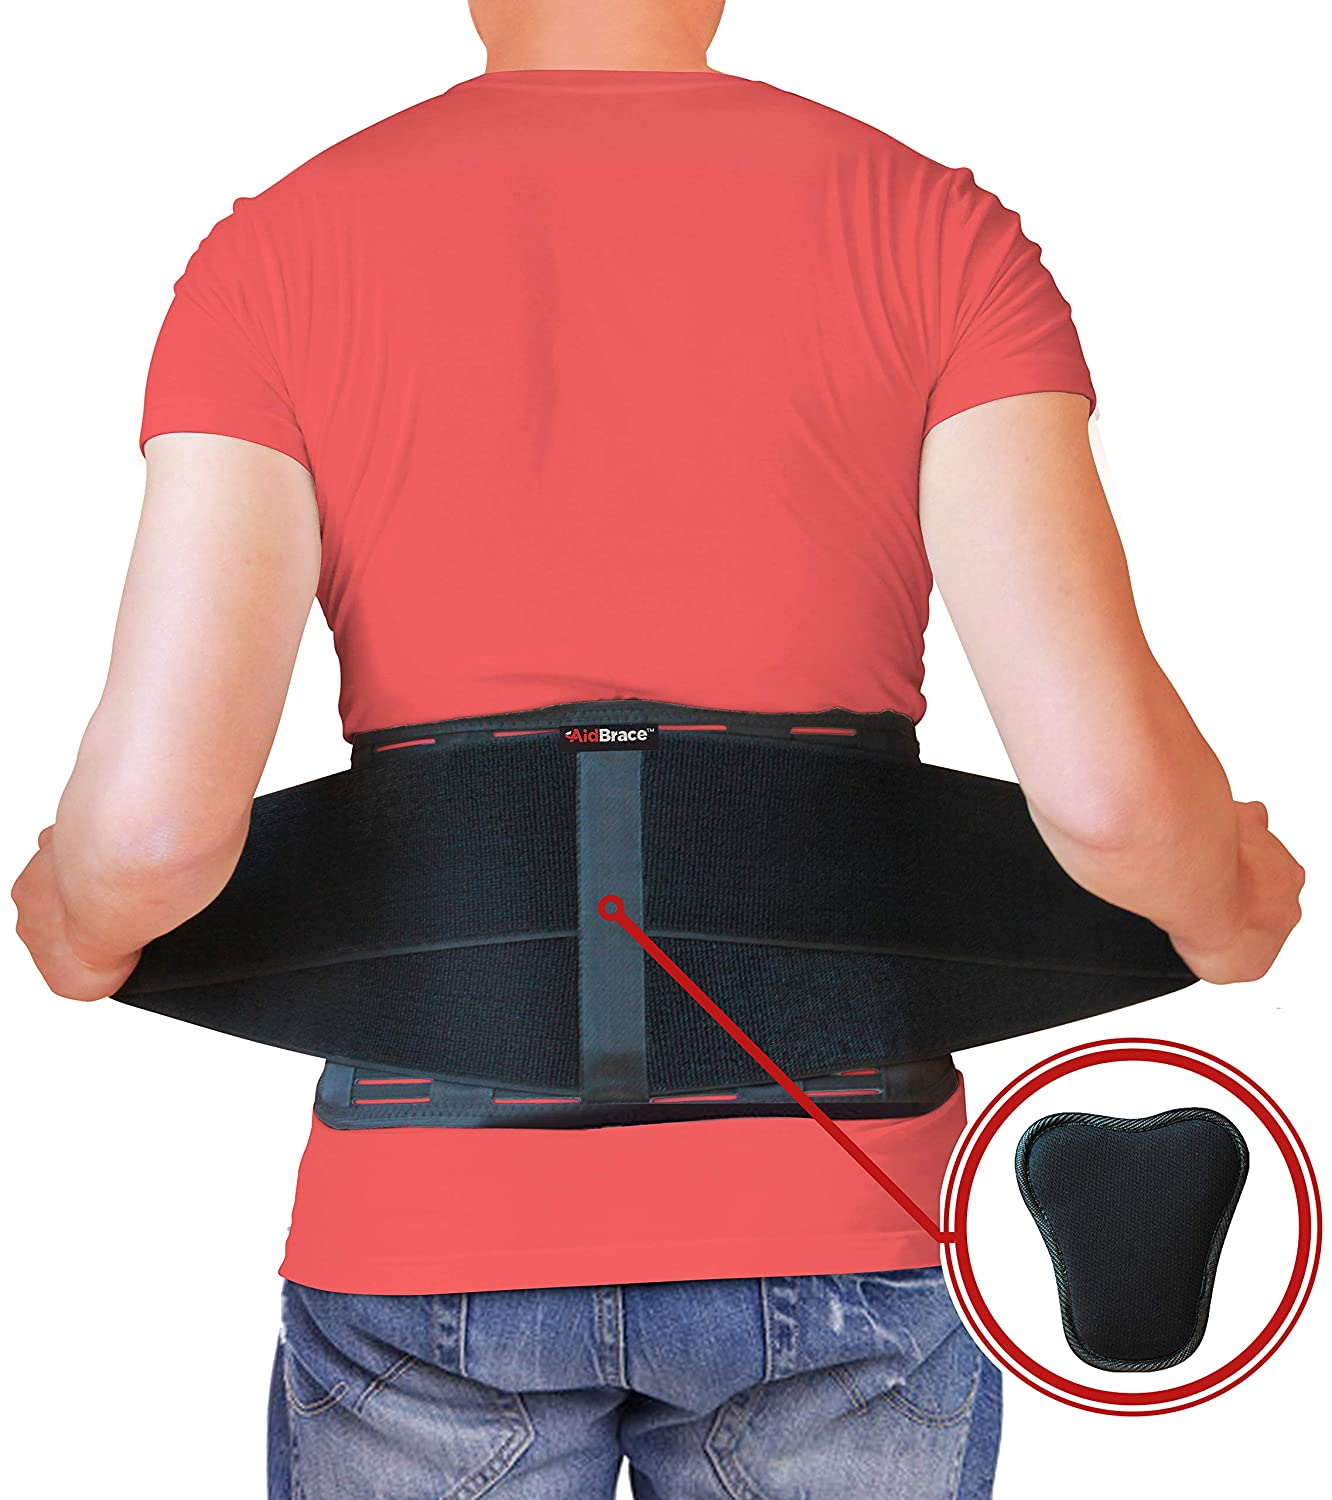 AidBrace Back Brace Support Belt - Lower Back Pain Relief for Herniated Disc, Sciatica, and Scoliosis for Men & Women - Includes Removable Lumbar Pad